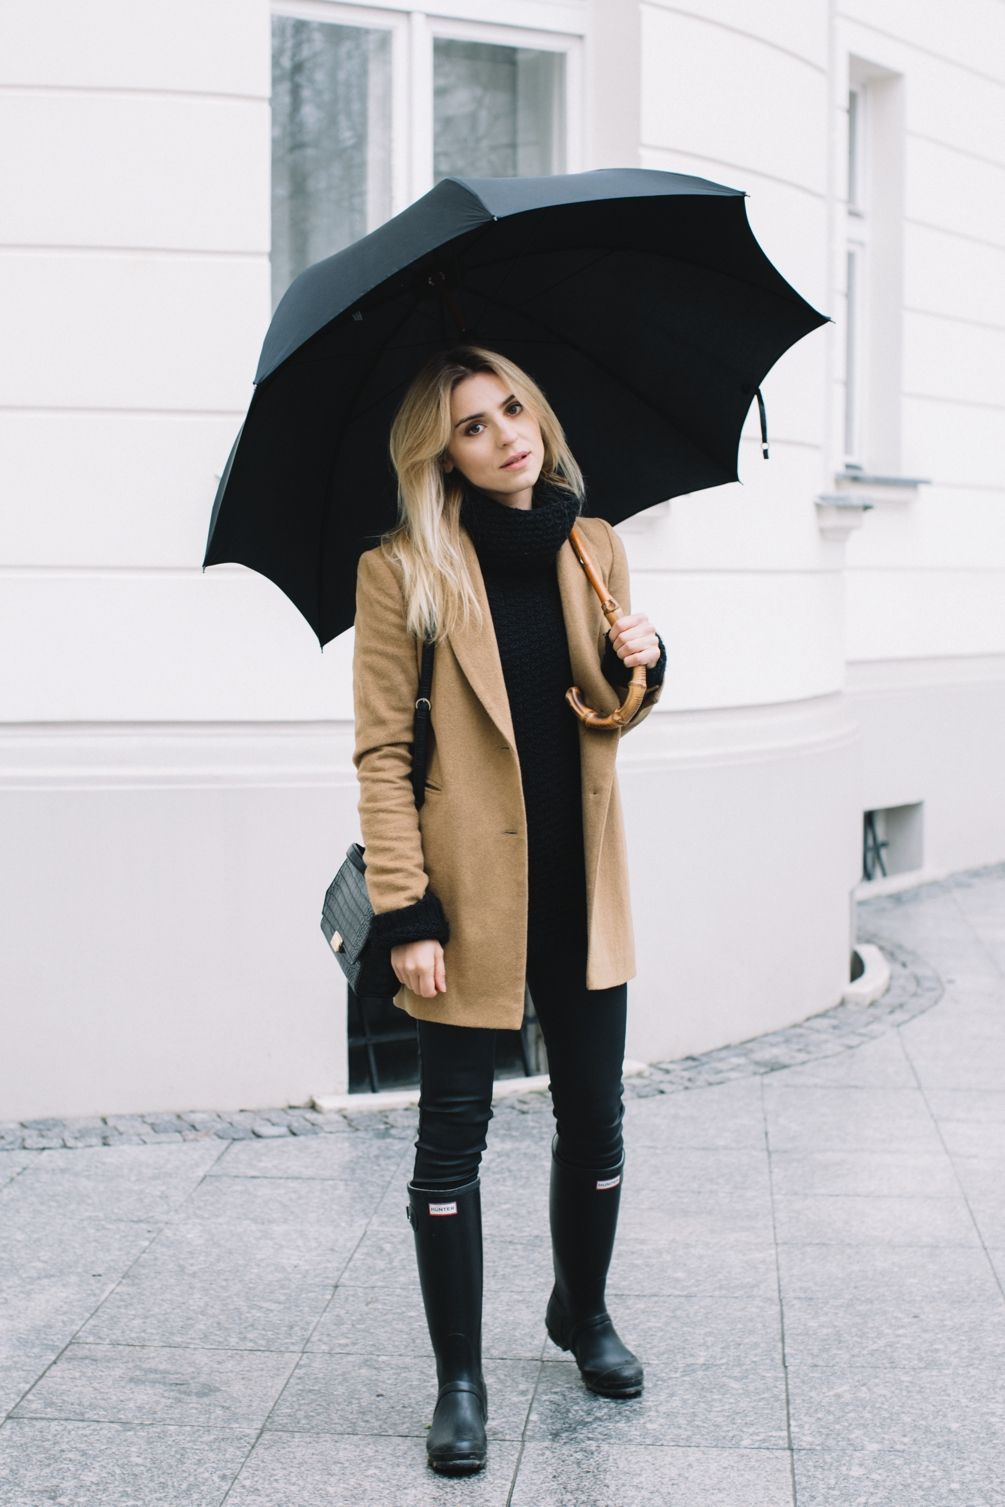 Classic Neutrals Look; Camel Coat And Hunters | Clothing Inspiration | Pinterest | Camel Coat ...